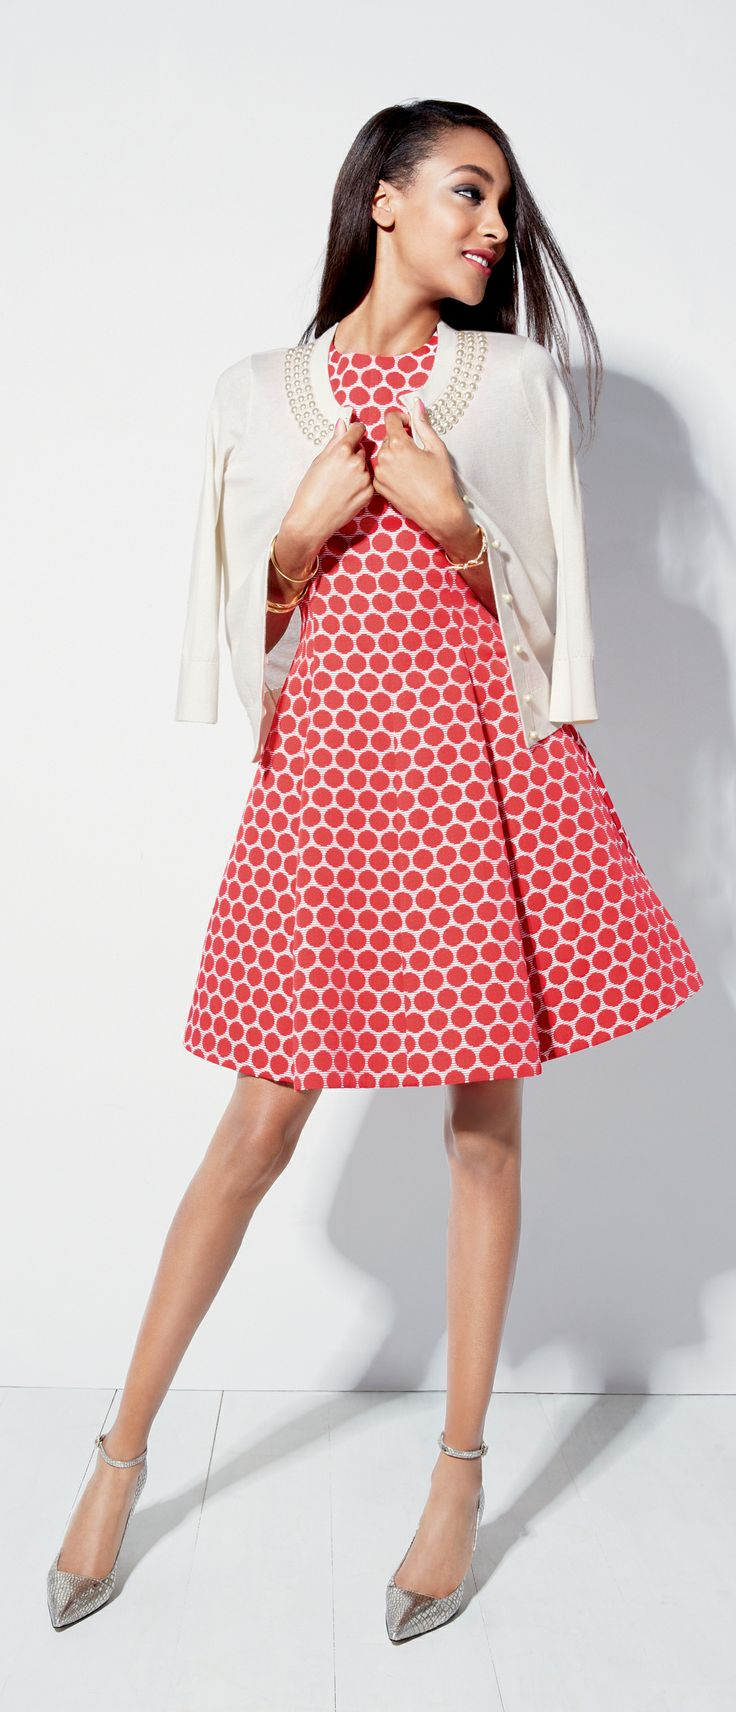 Always darling: Kate Spade dresses.